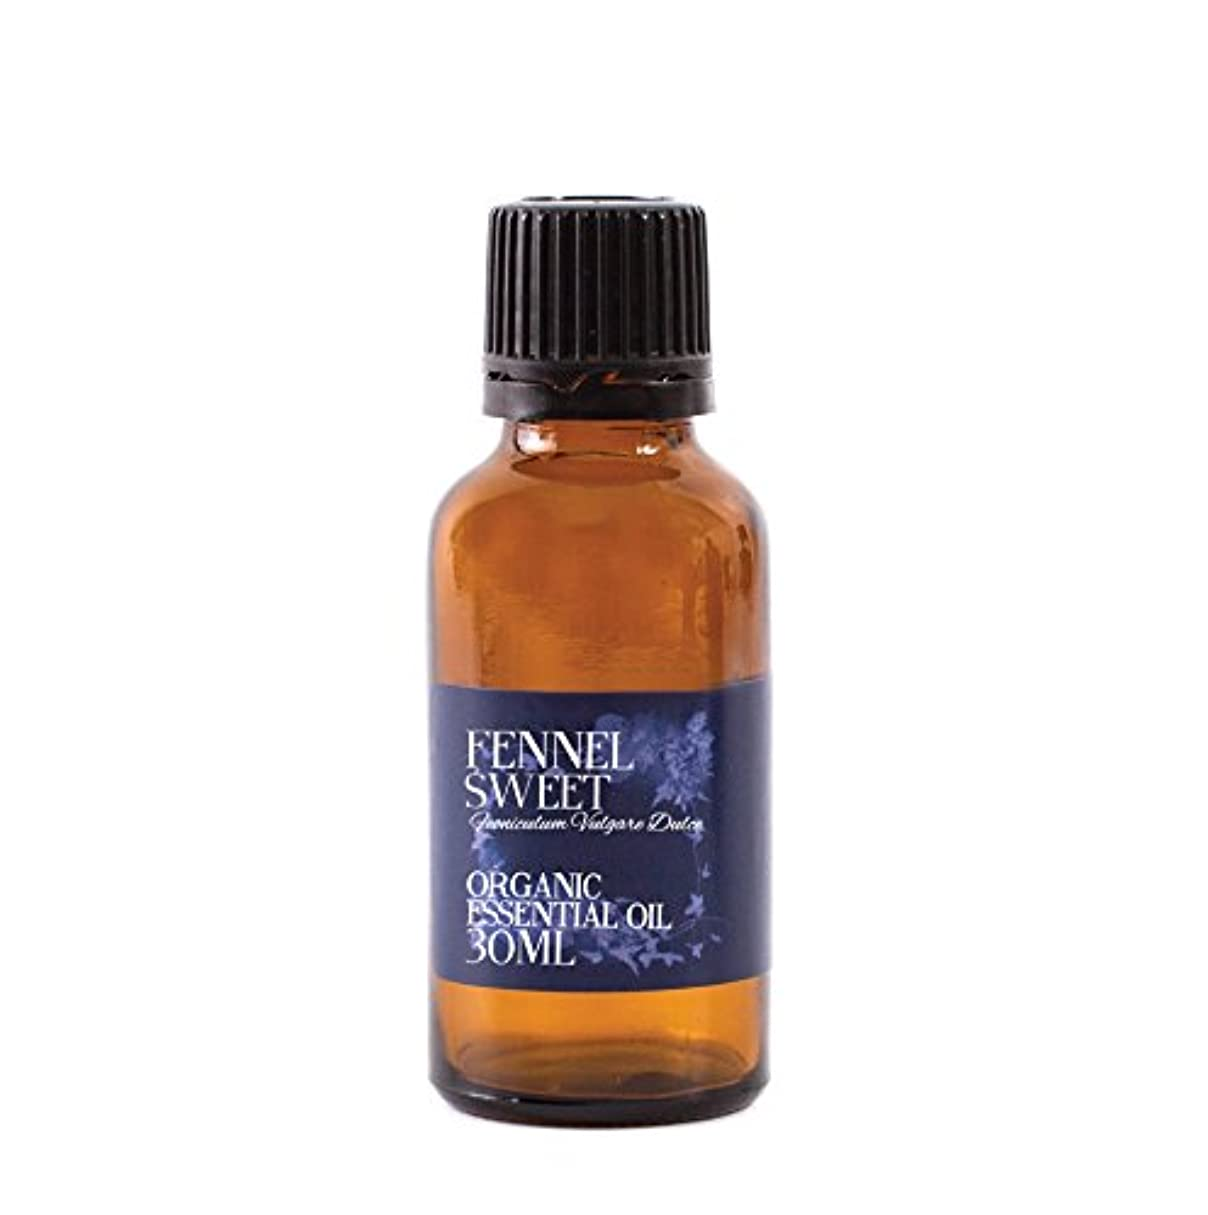 Mystic Moments | Fennel Sweet Organic Essential Oil - 30ml - 100% Pure